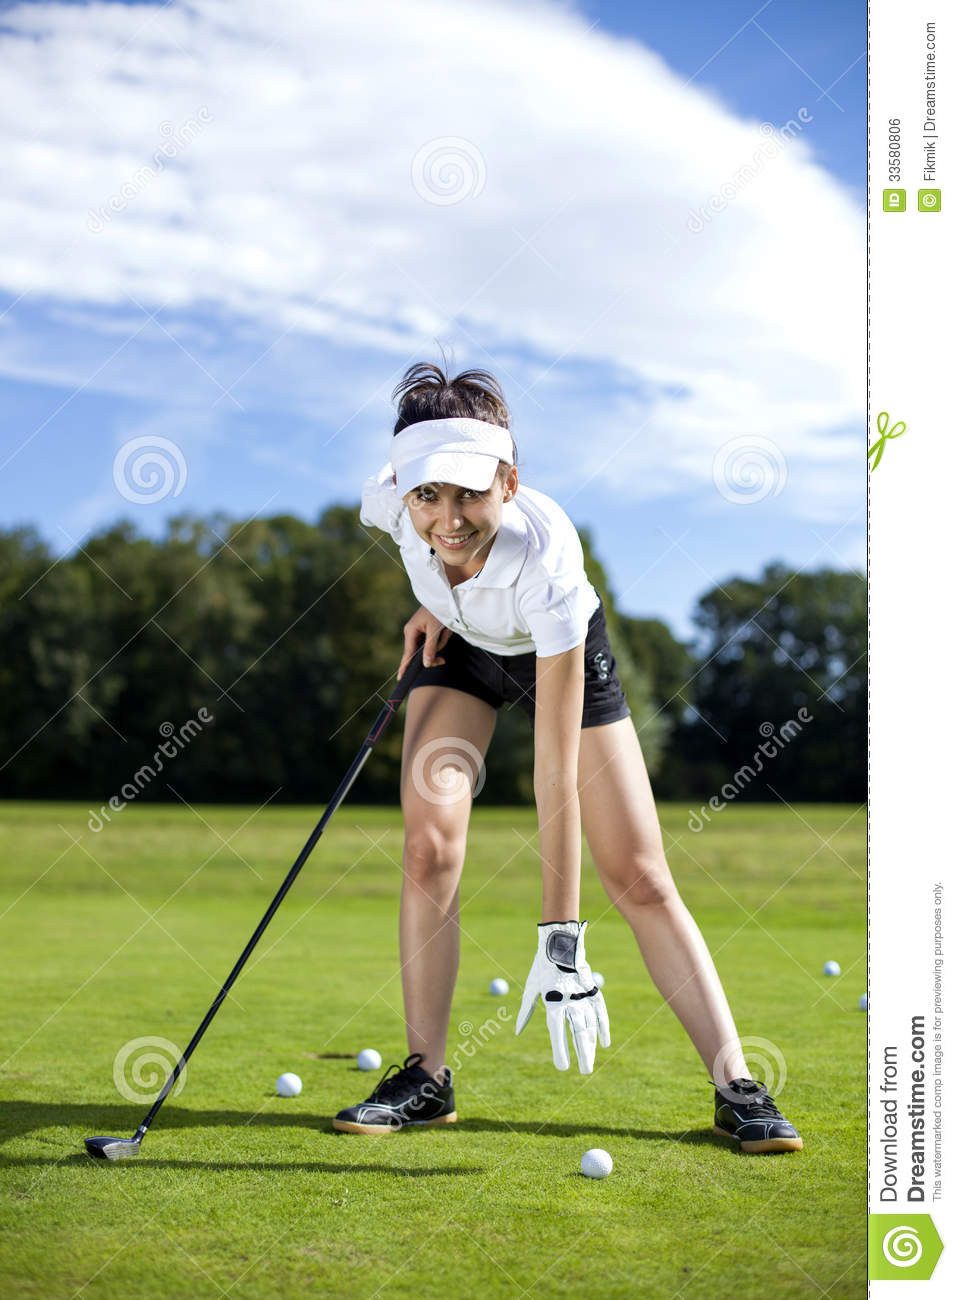 from Cory hot girls playing golf